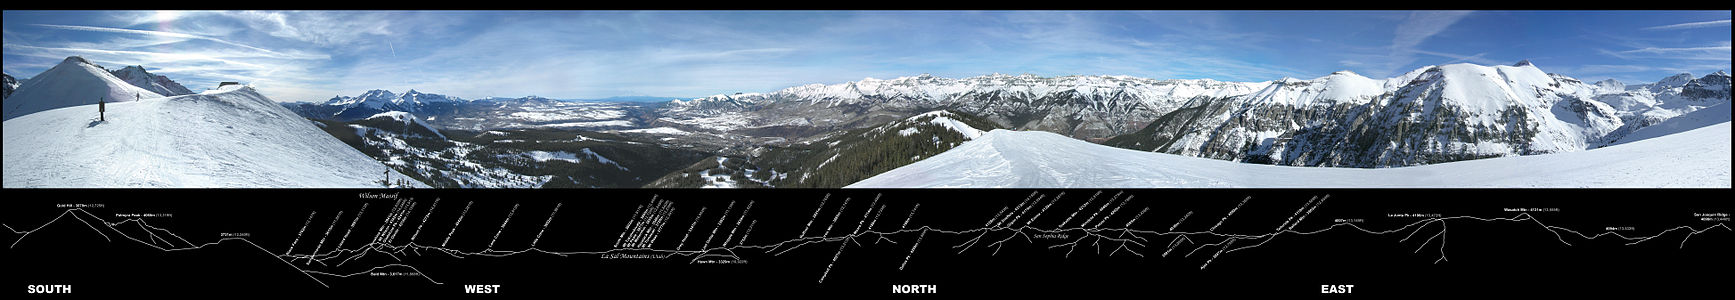 360° panorama of the southwestern San Juans, photographed from the Gold Hill Ridge of the Telluride Ski Resort.